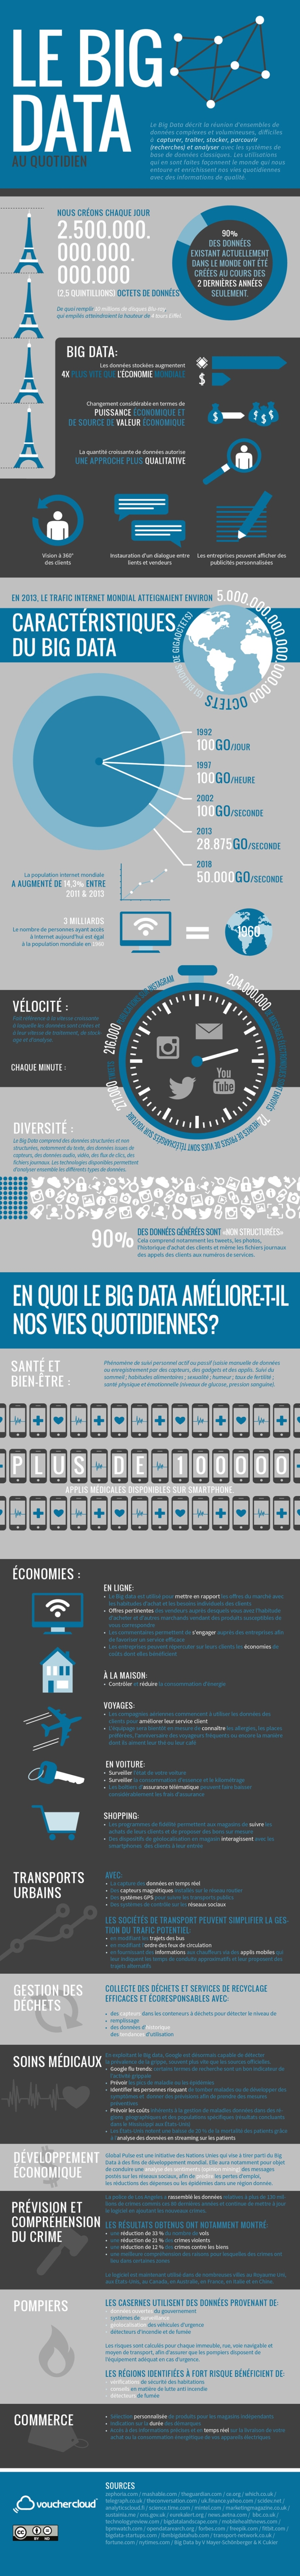 Infographie Big Data au quotidien - VoucherCloud